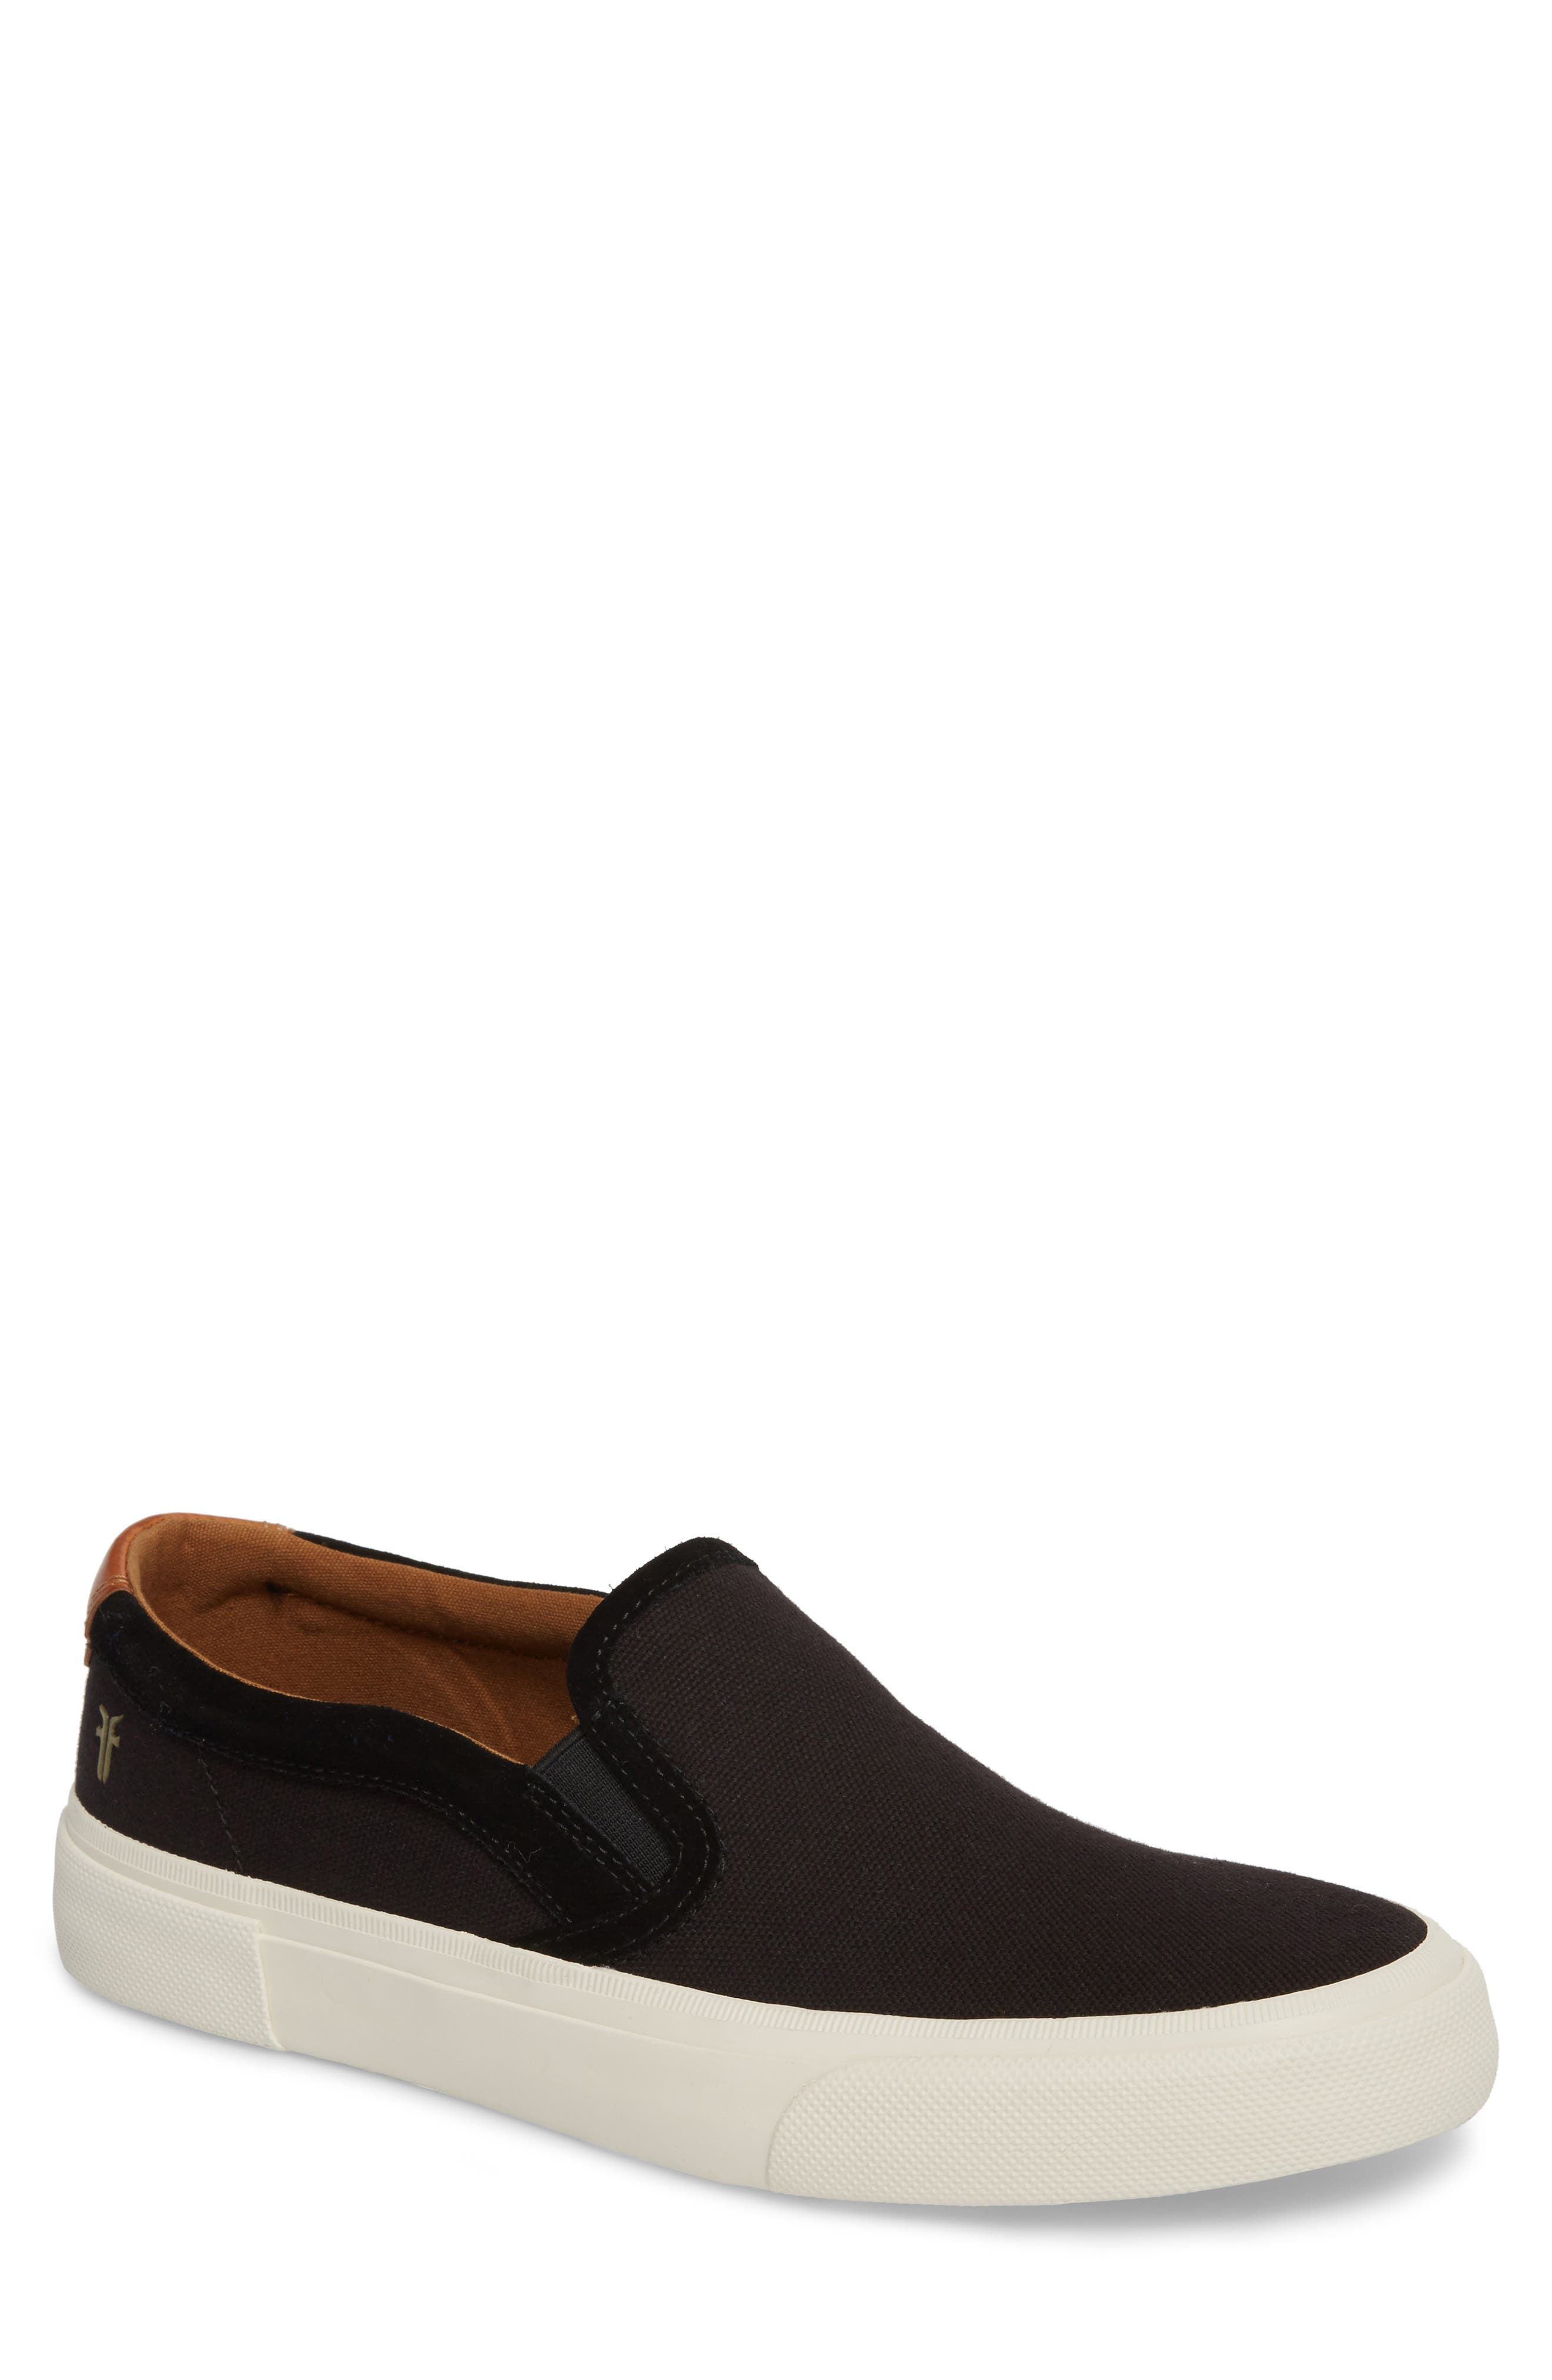 Ludlow Slip-On,                         Main,                         color, 001